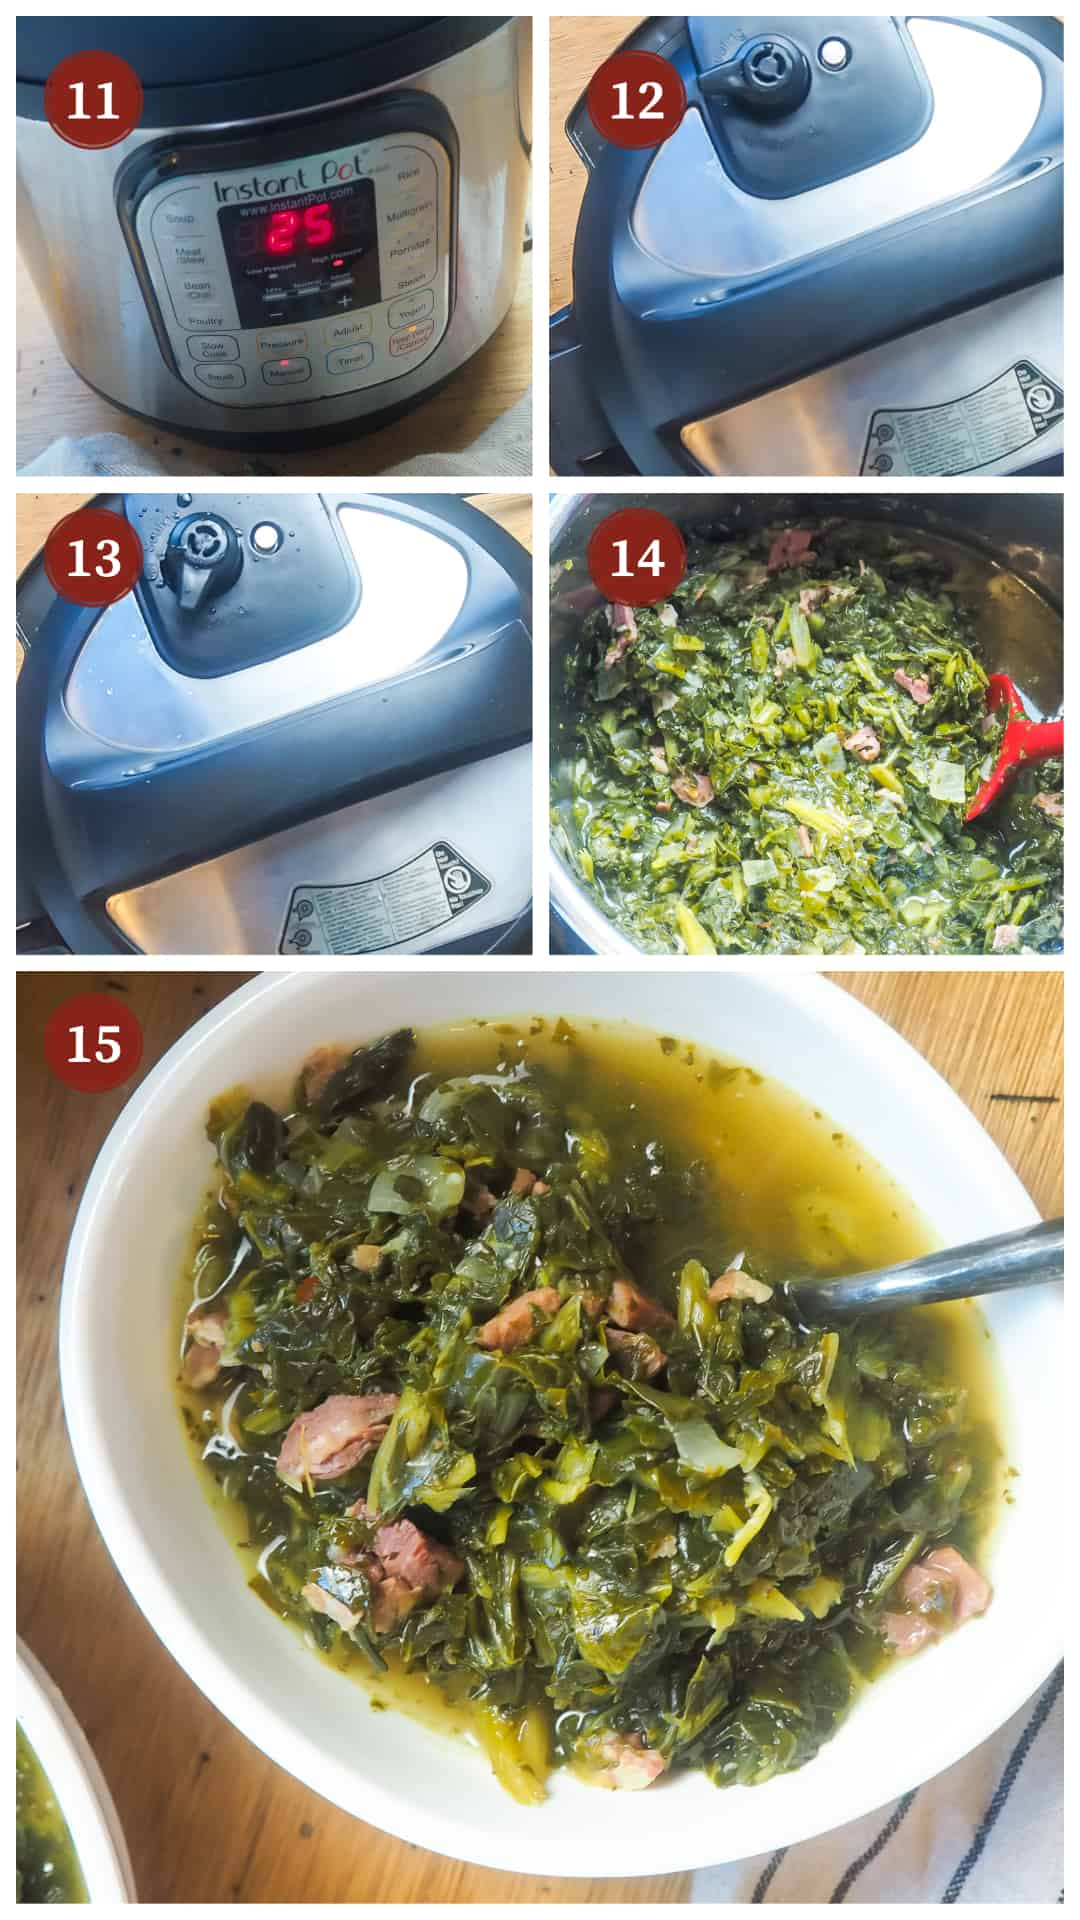 a collage of images showing the process of making collard greens in an instant pot, steps 11 - 15